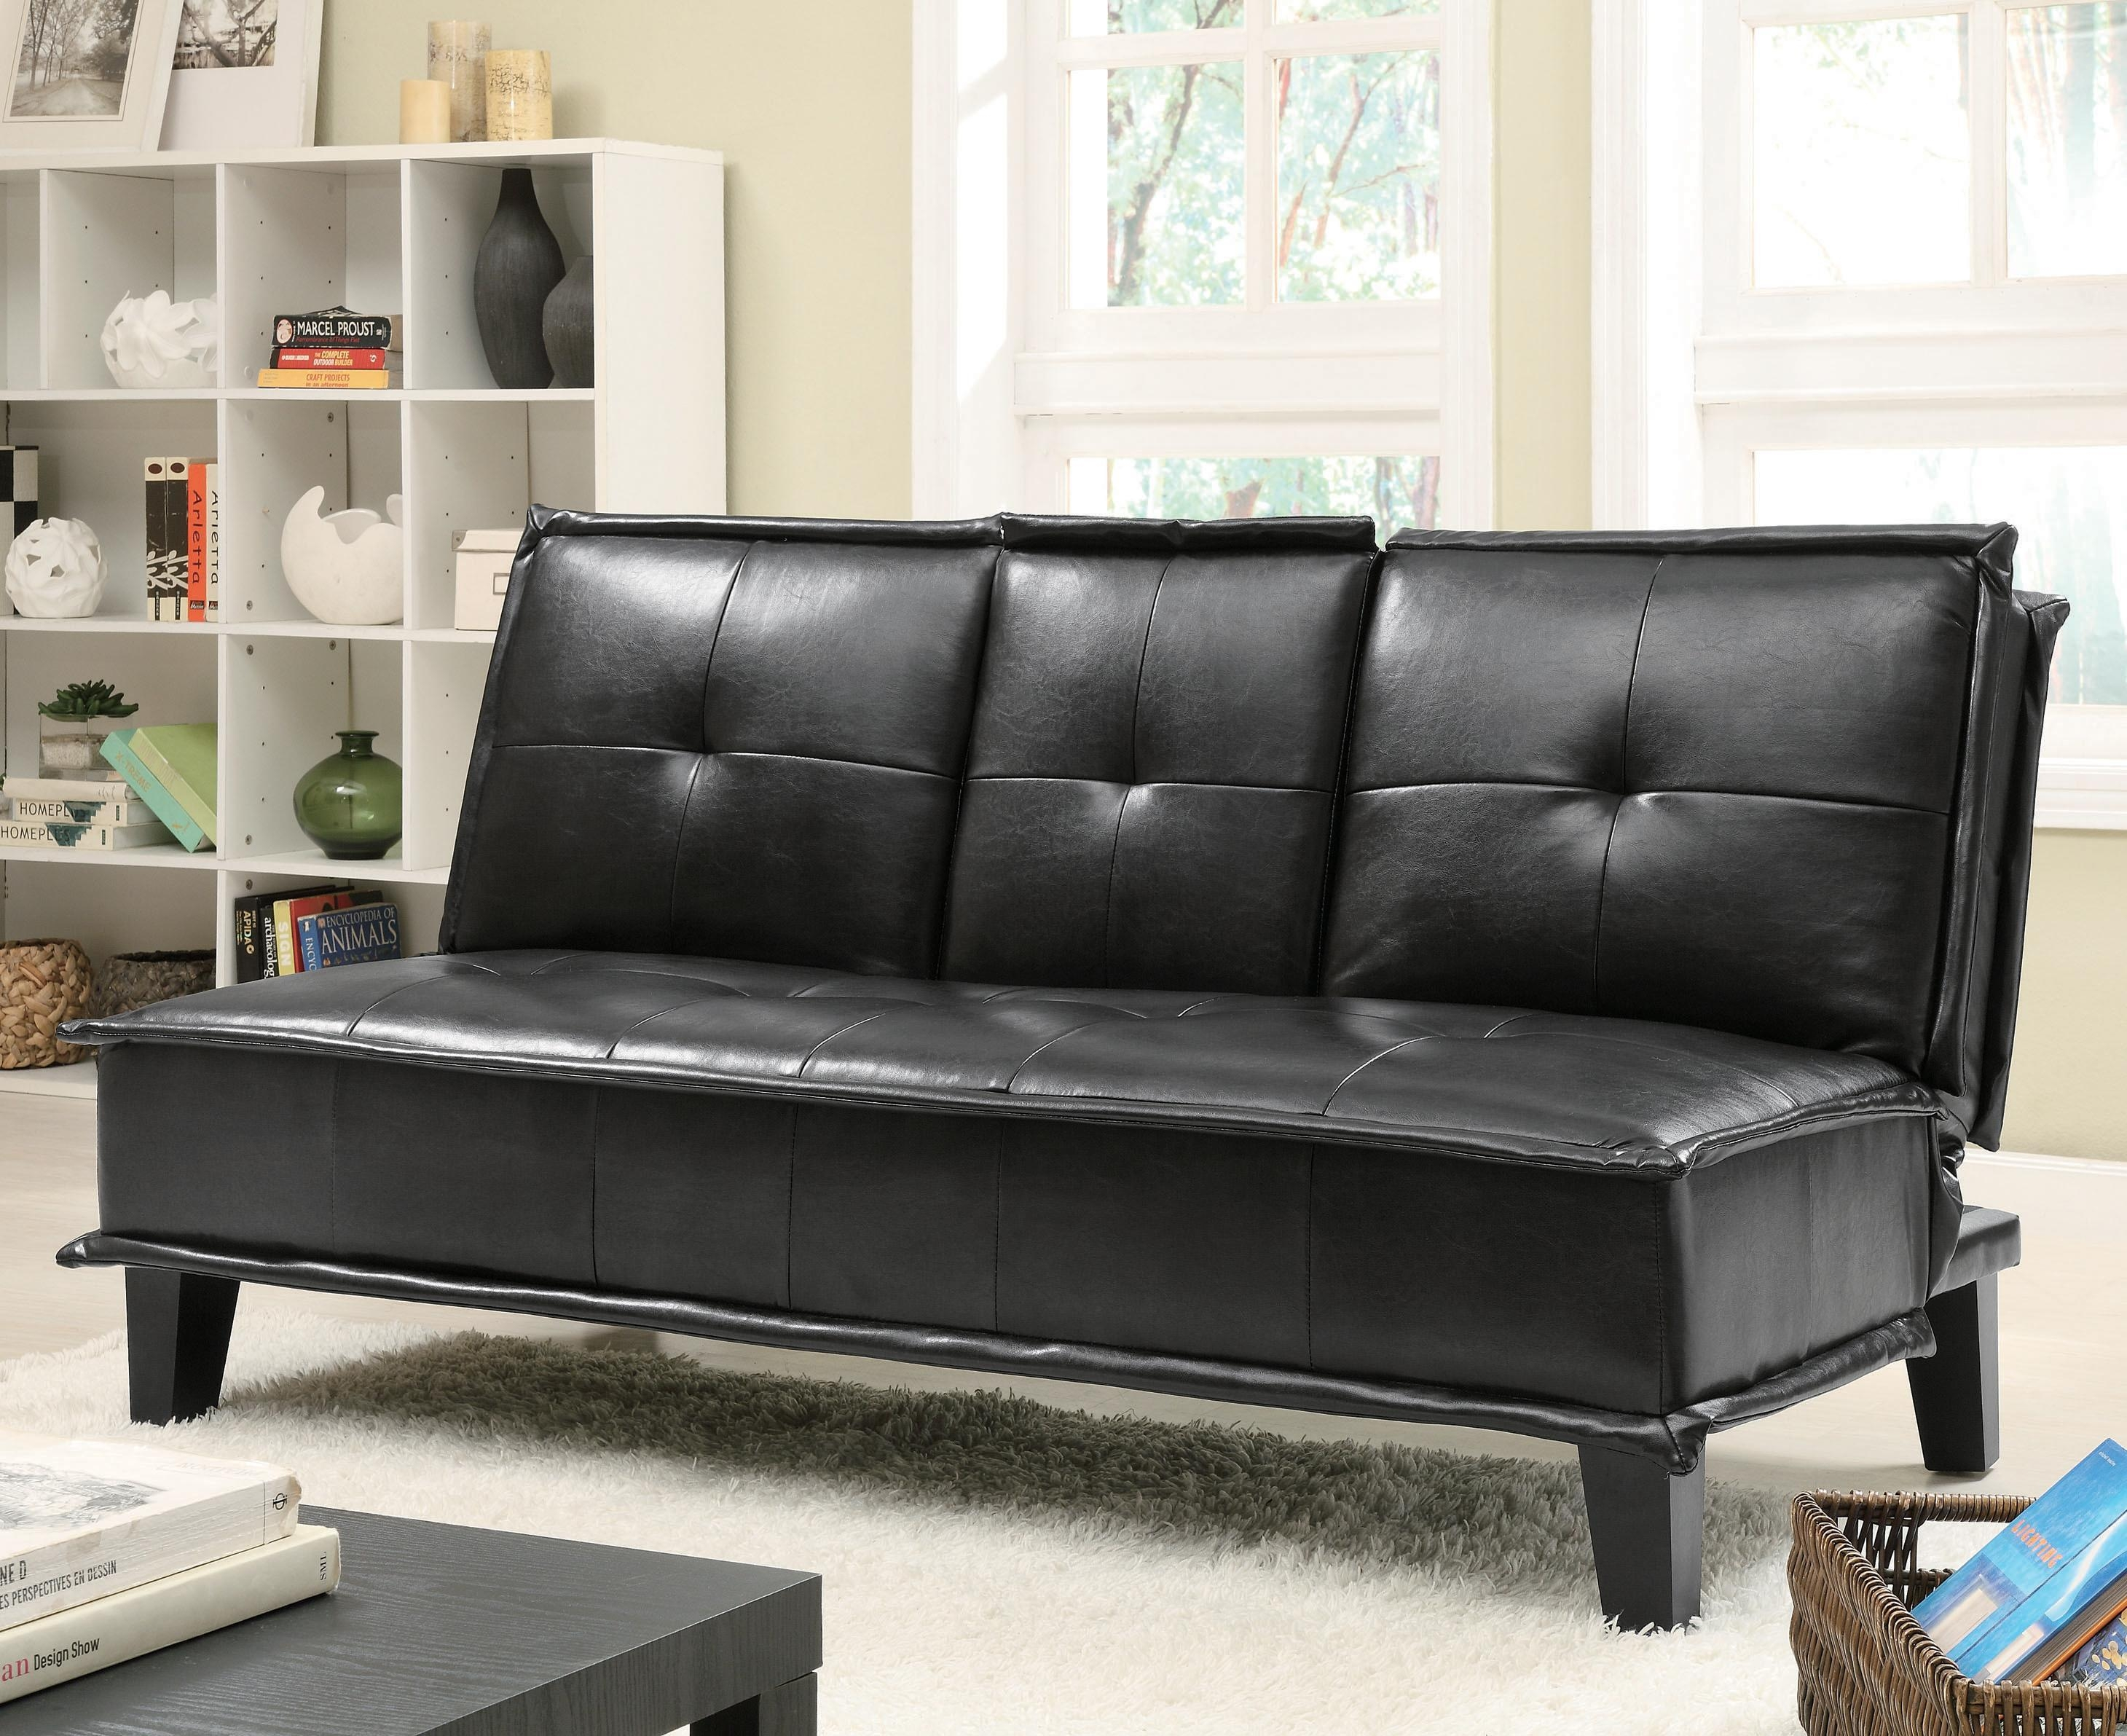 Vinyl Sofa Bed With Drop Down Table in Black Vinyl Sofas